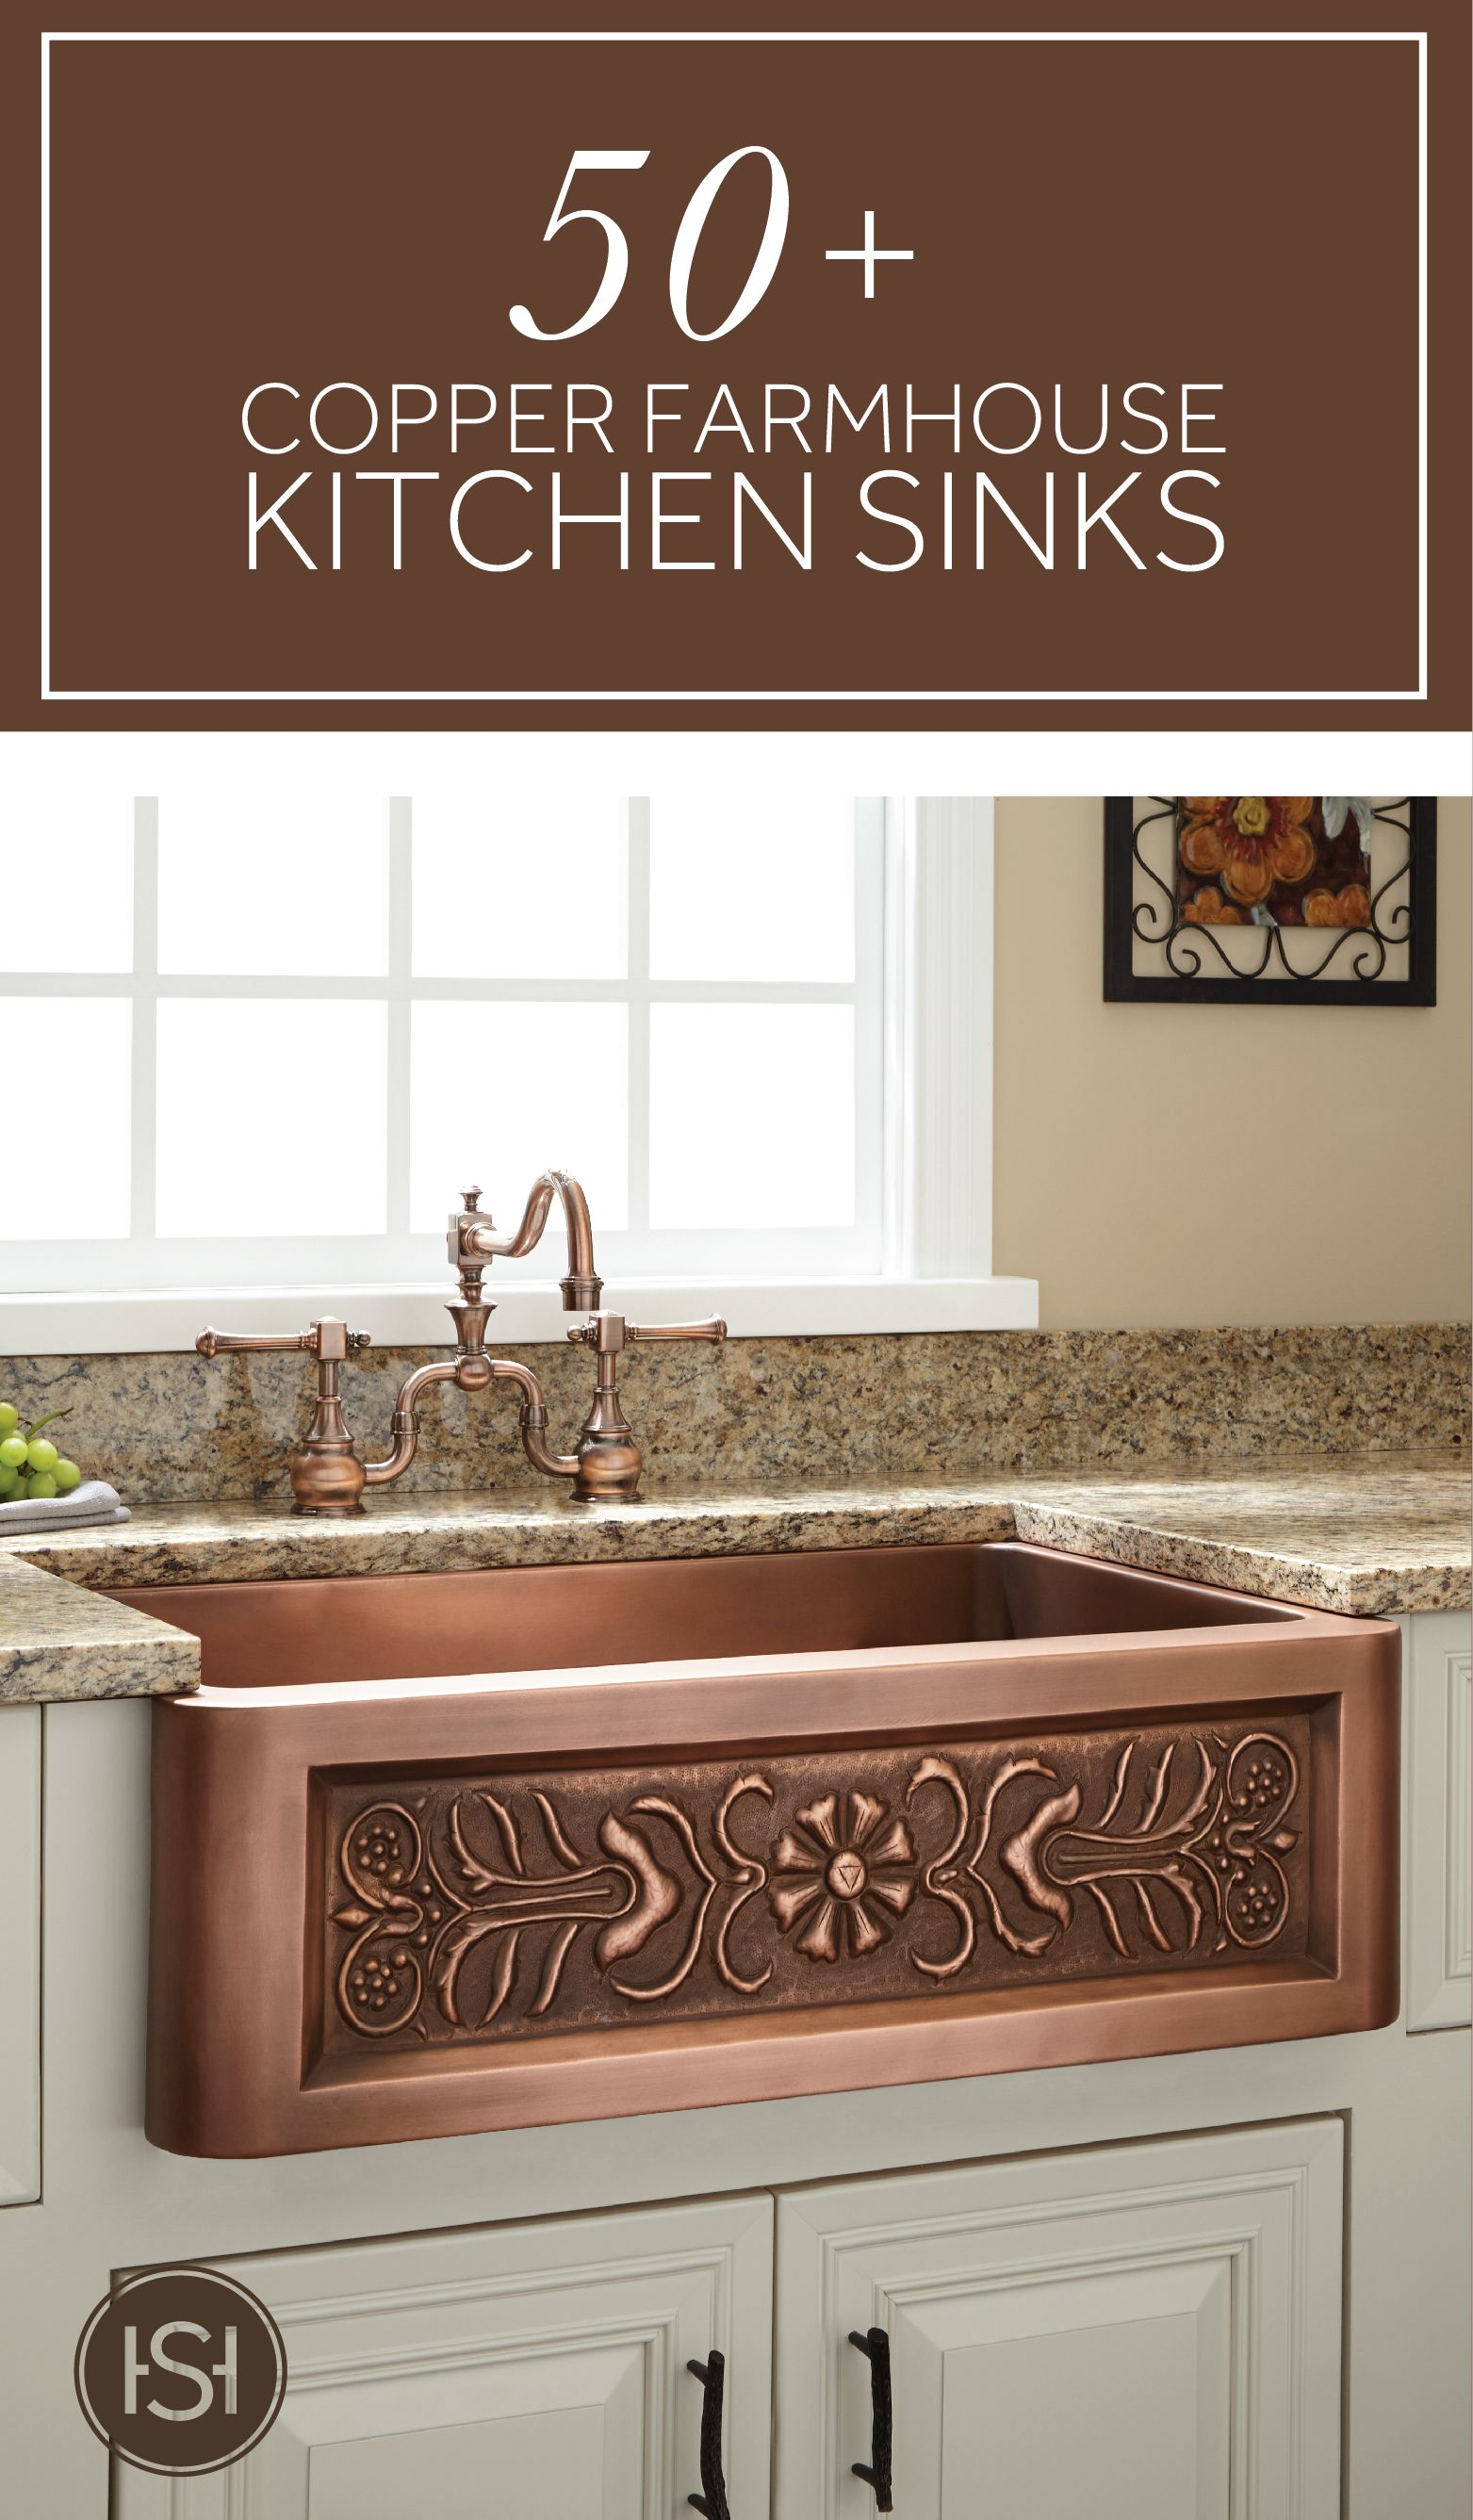 Bright and beautiful copper farmhouse sinks are the perfect